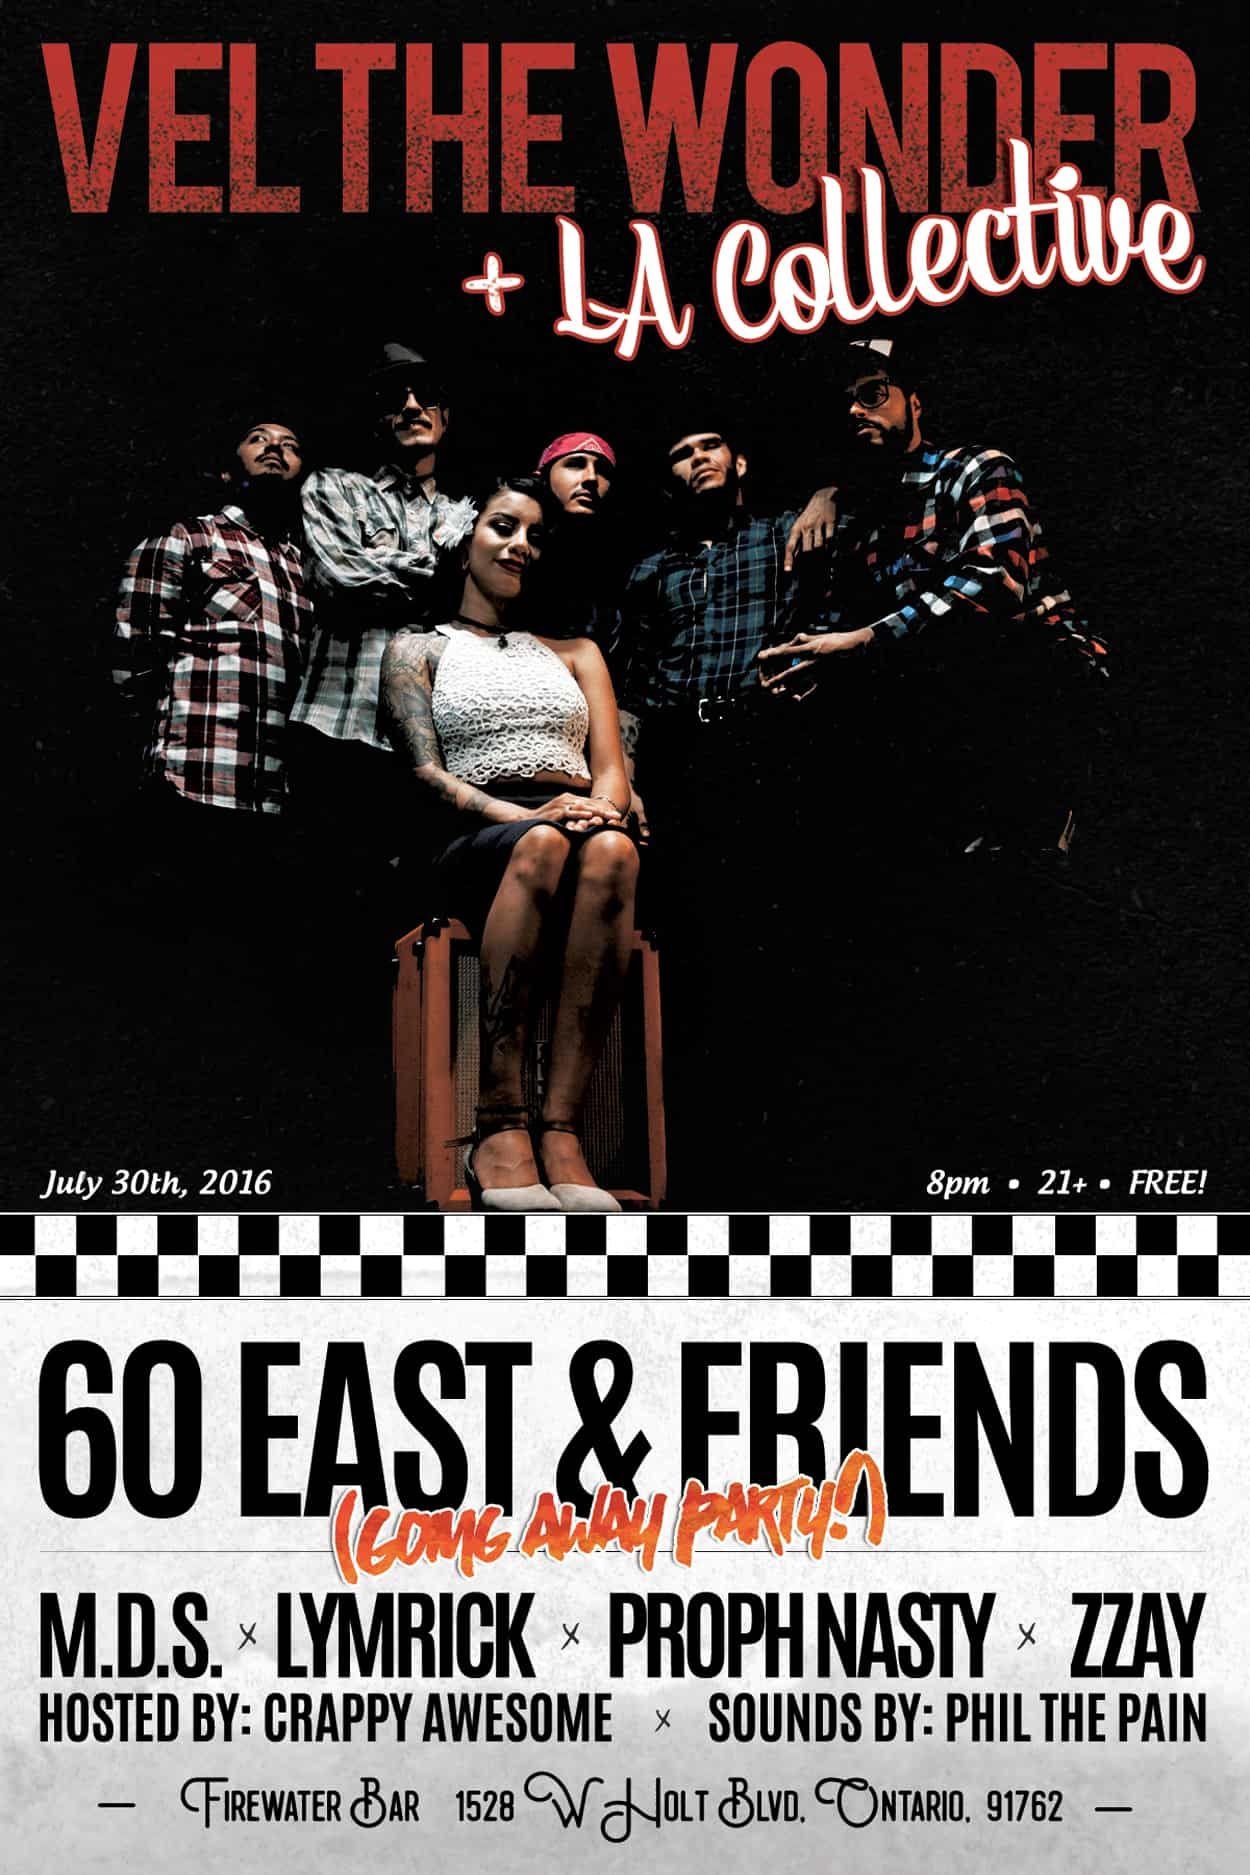 60 east - going away party - flyer design